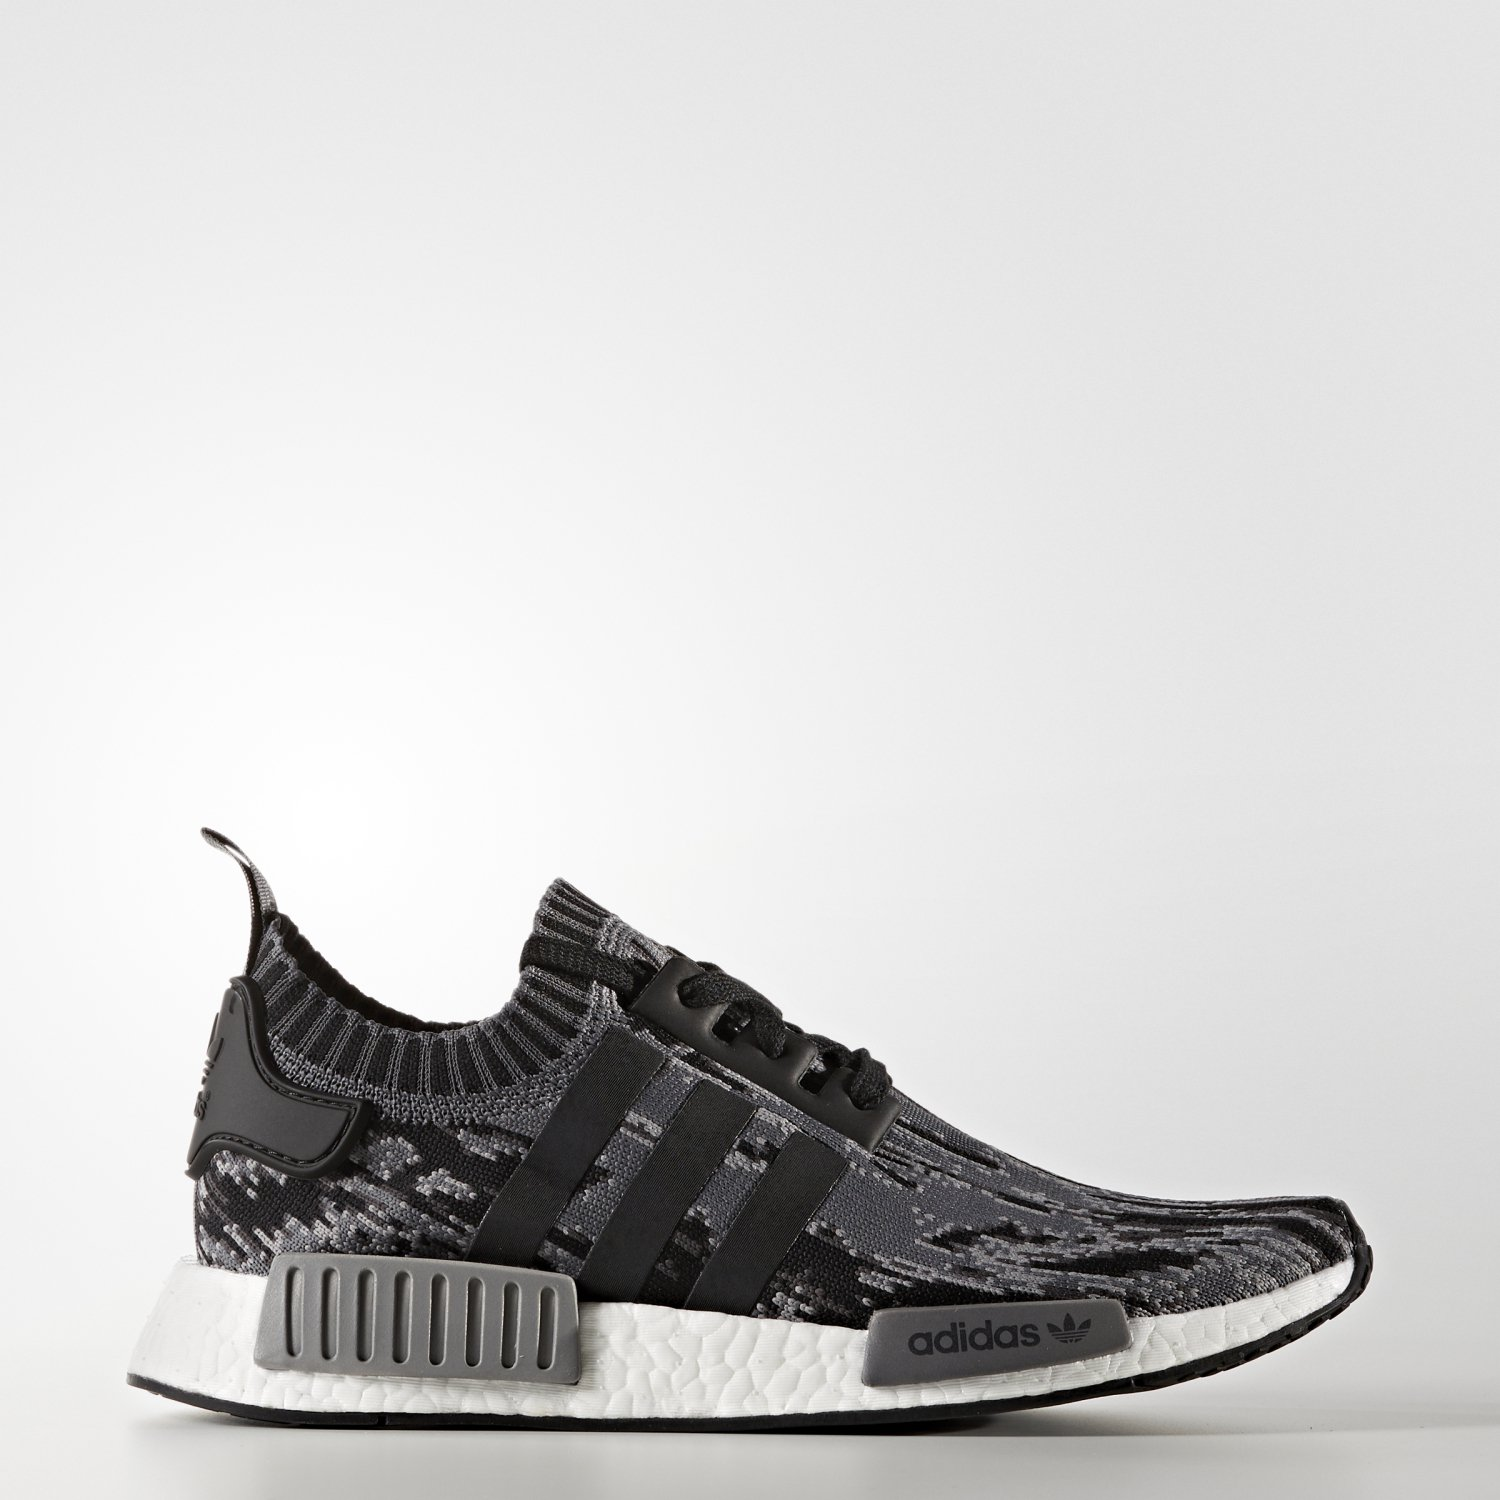 adidas-nmd-r1-pk-bz0223-release-20171103